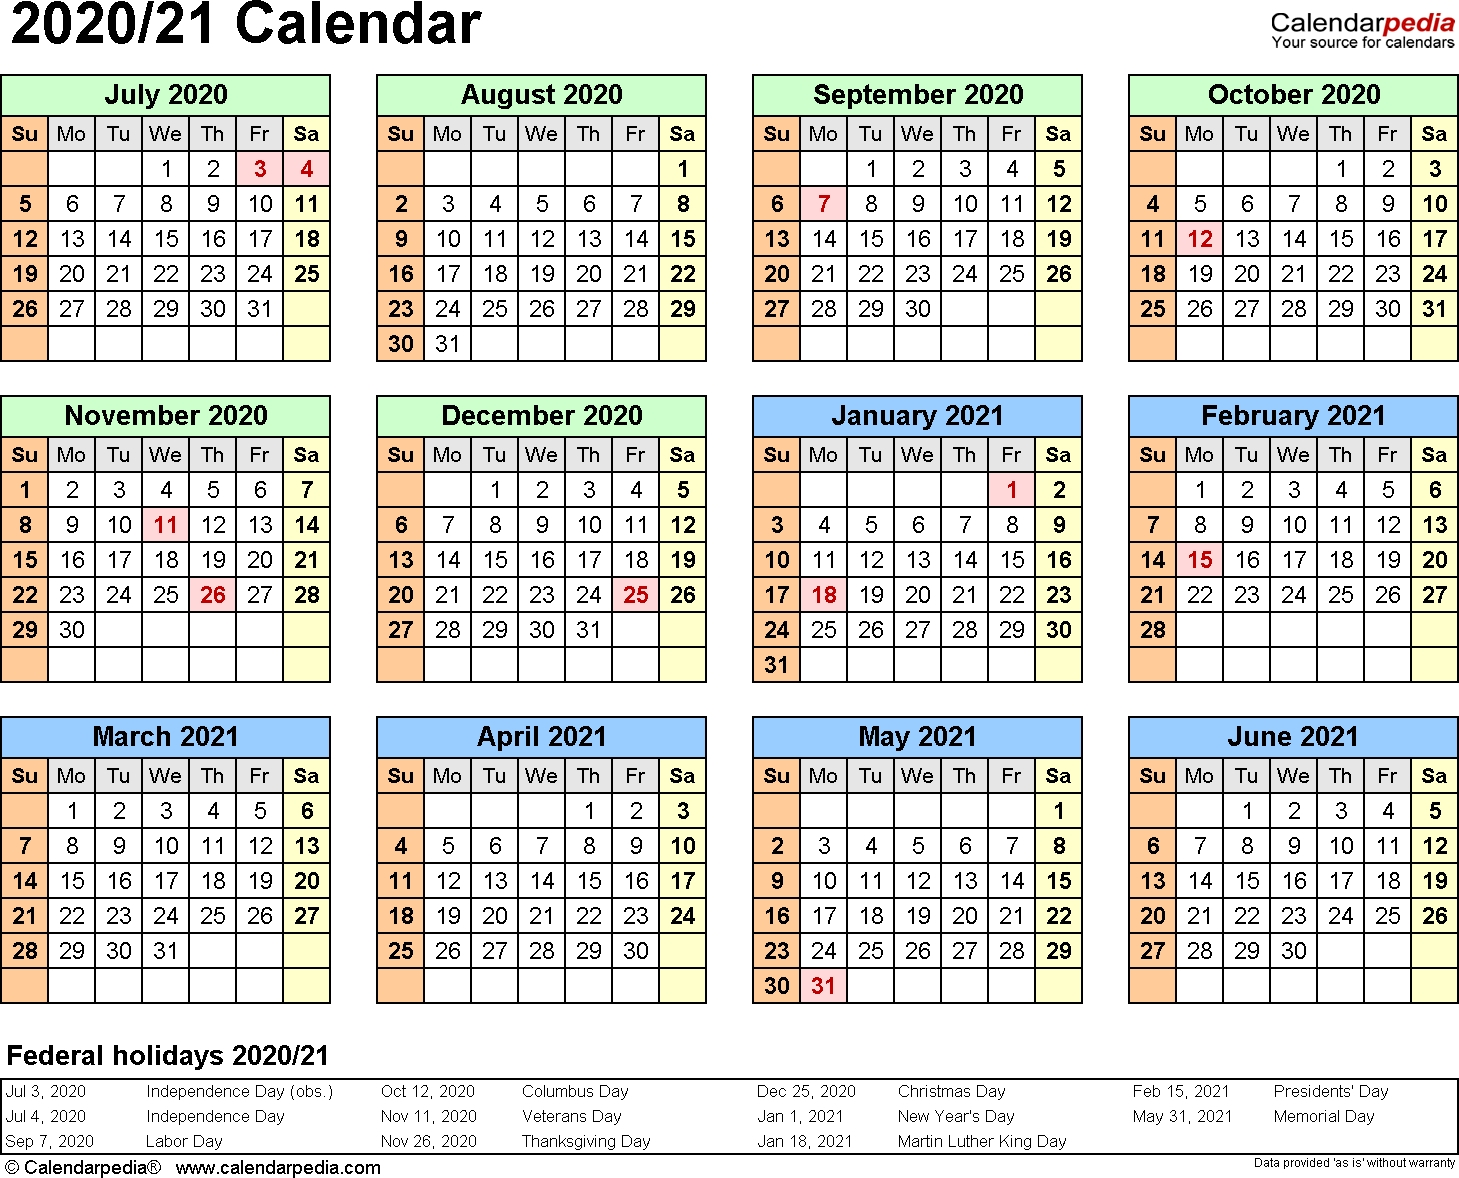 3 Year Calendar 2020 To 2021 Excel | Calendar For Planning-Excel Vacation Calender 2021